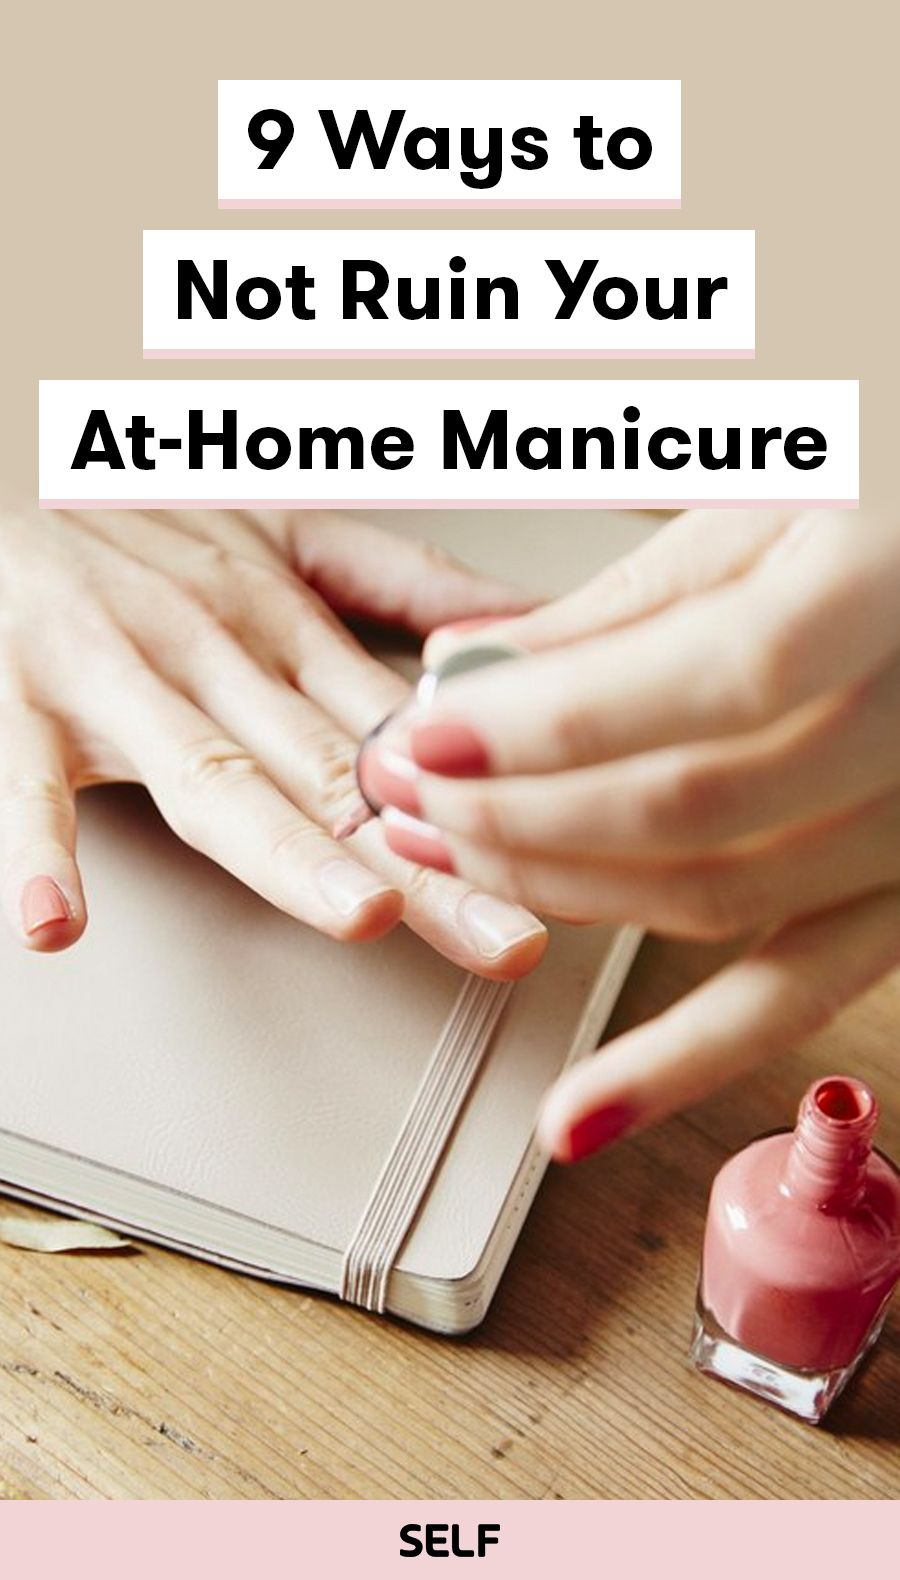 9 Ways to Not Ruin Your AtHome Manicure Manicure at